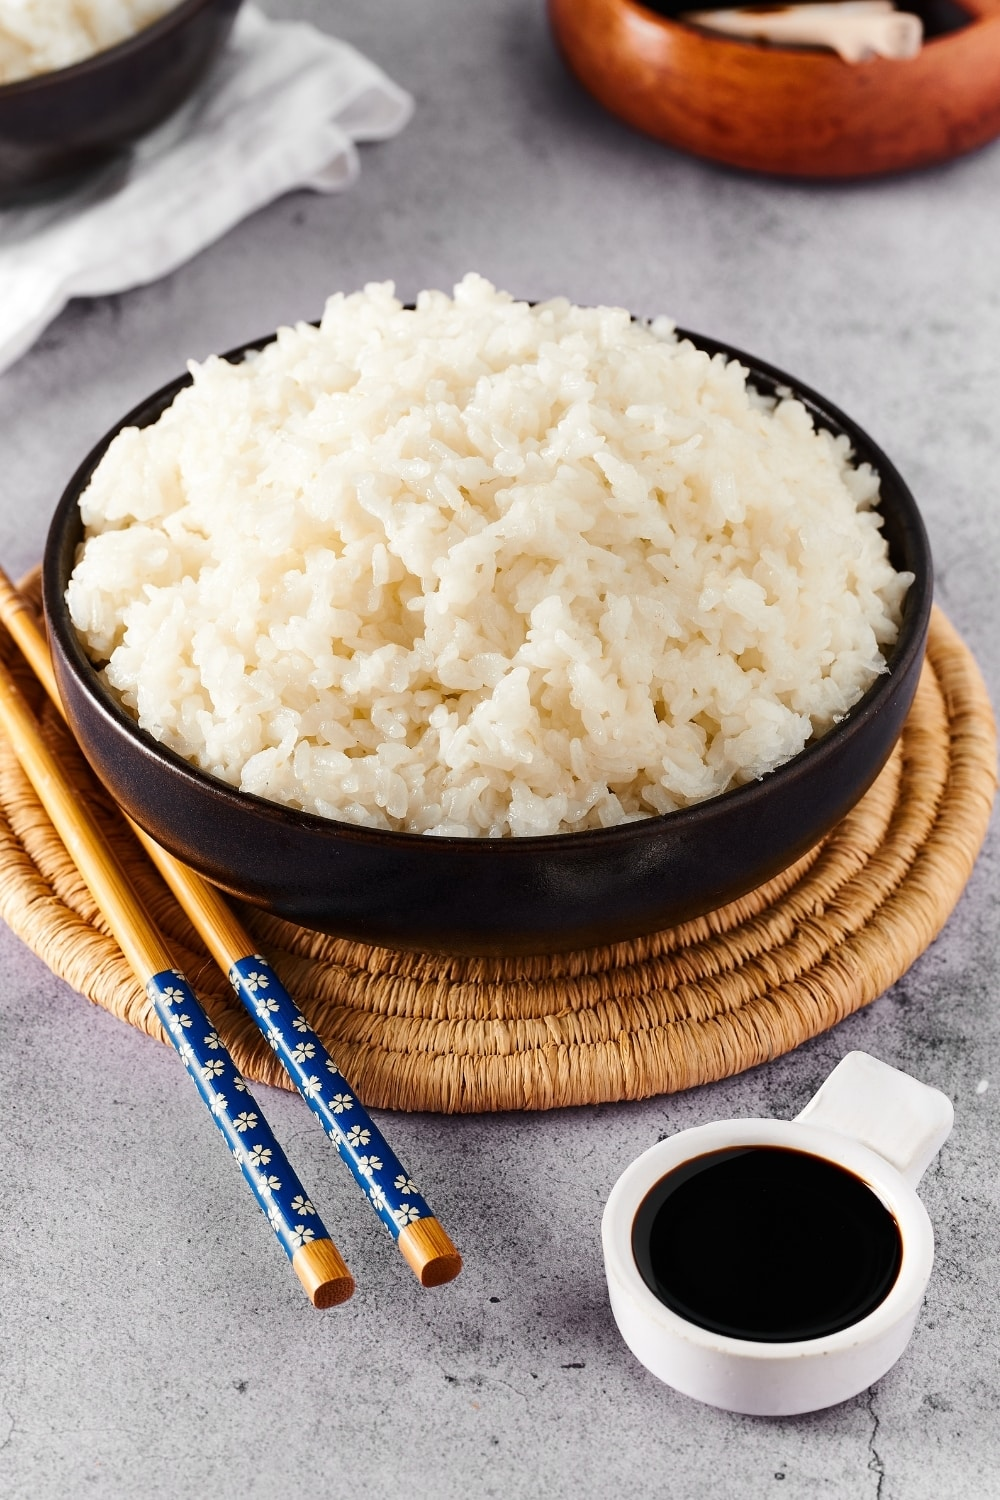 Instant pot sushi rice and a black bowl and a straw circular placemat. To the left of the bowl on the placemat is a pair of chopsticks and in front of the placemat as a small white bowl filled with soy sauce.